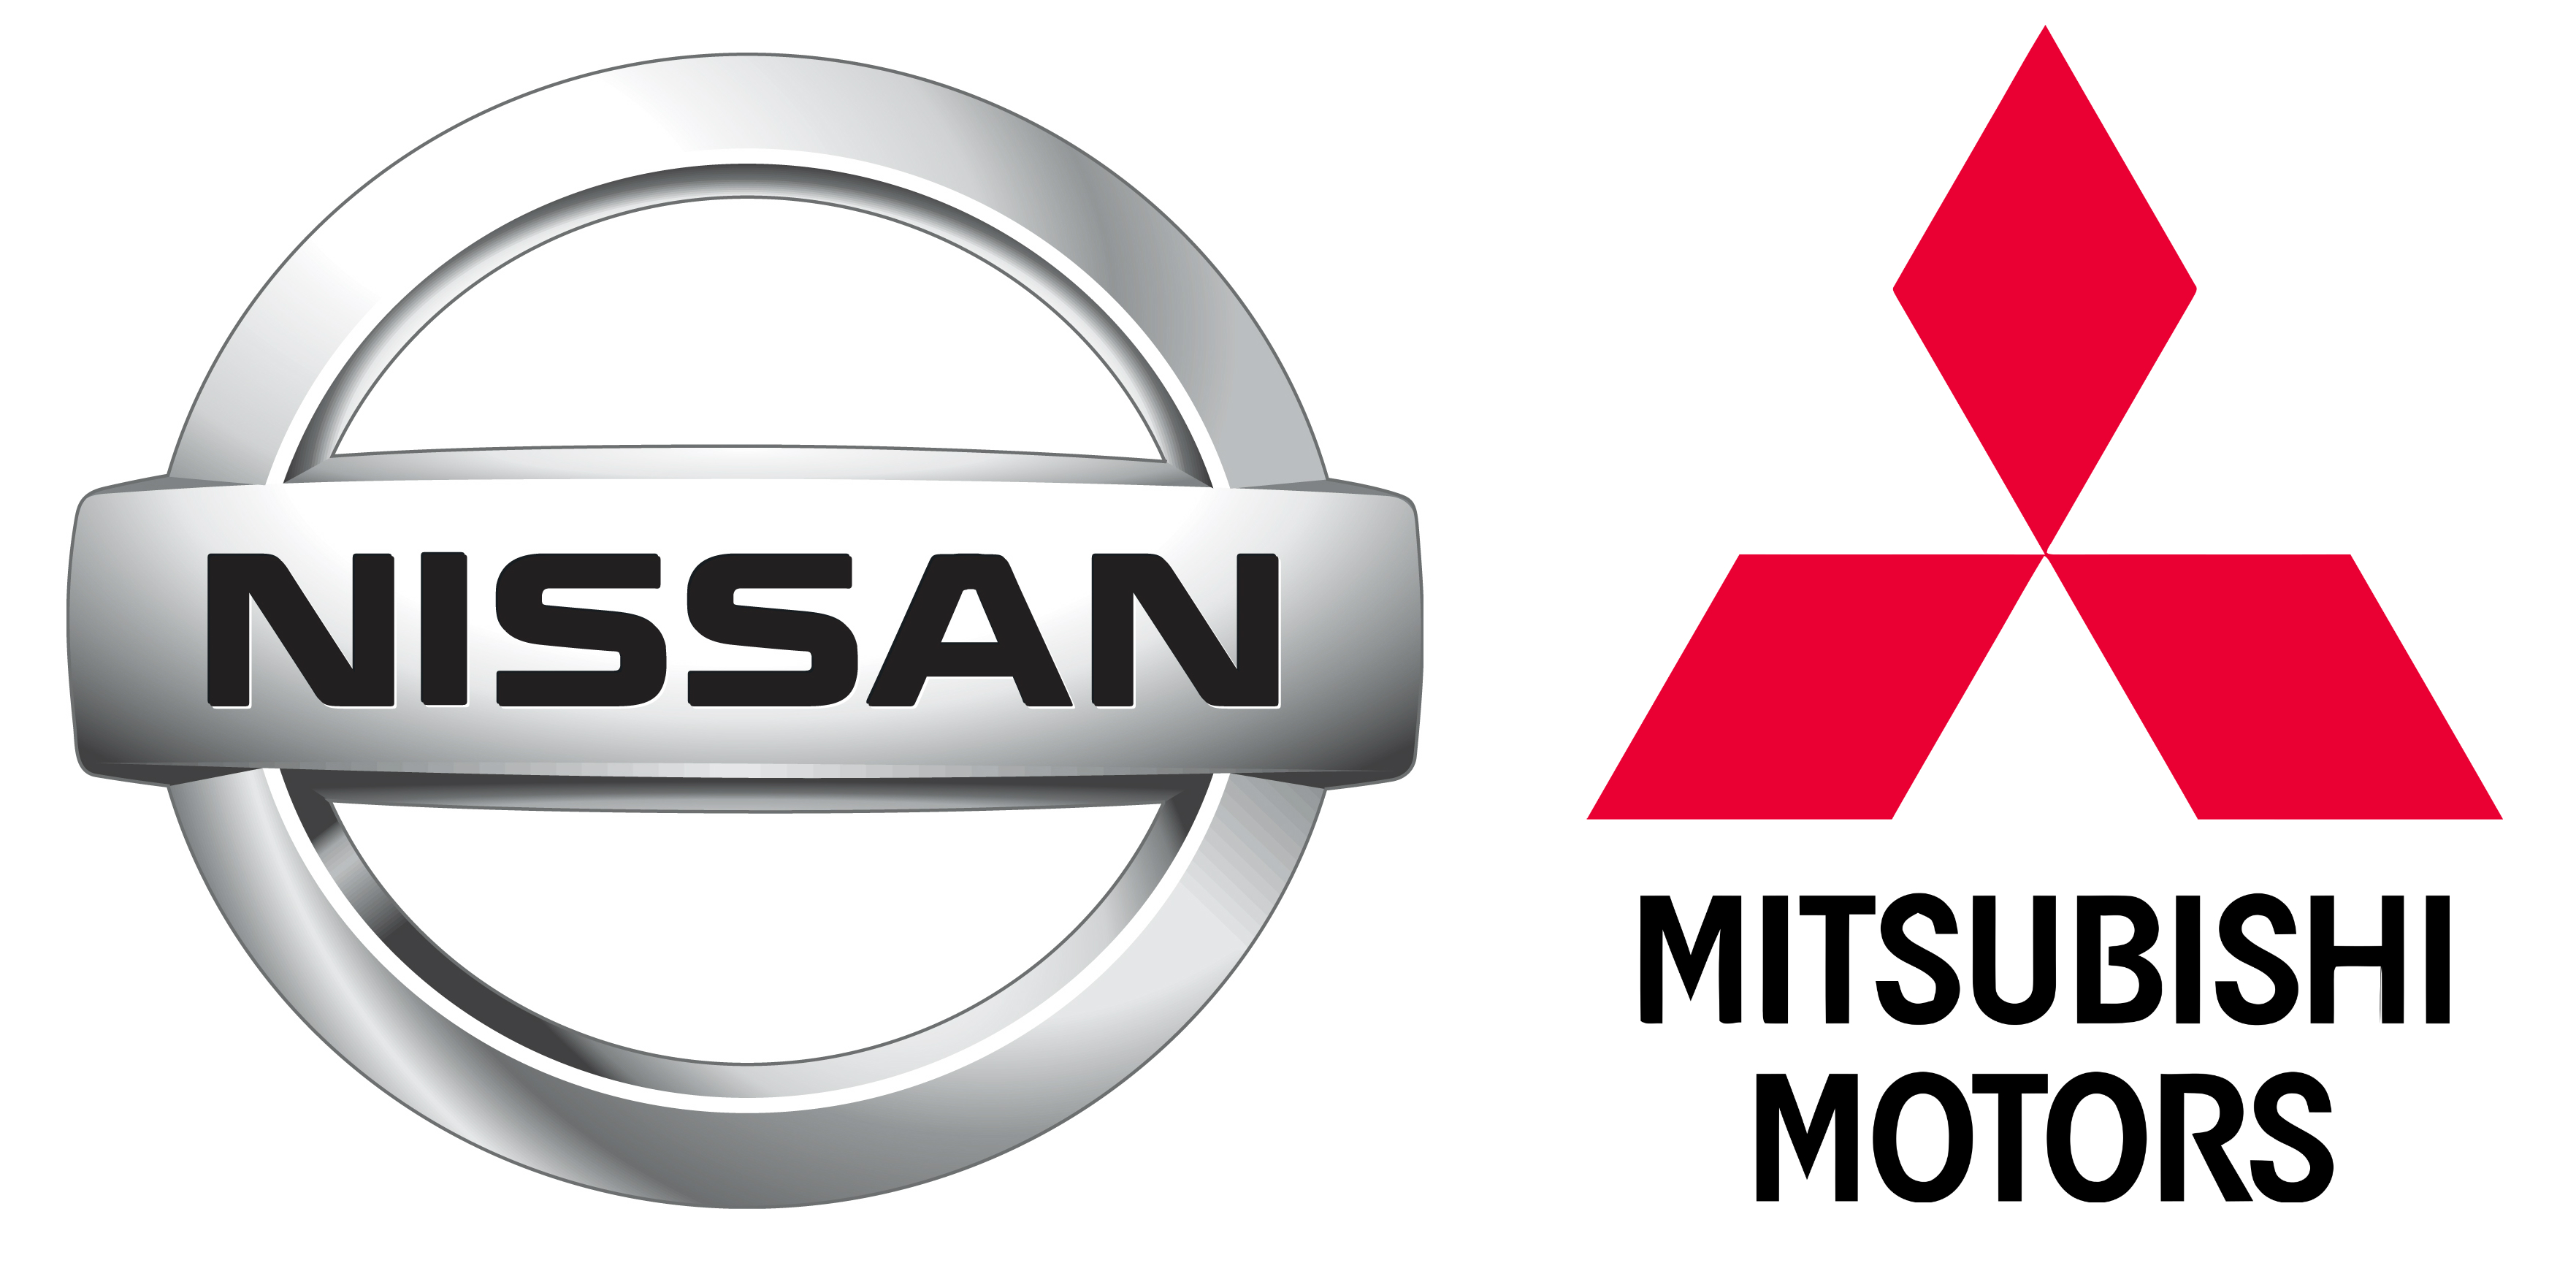 Nissan Takes Controlling Stake In Mitsubishi For 2 2 Billion